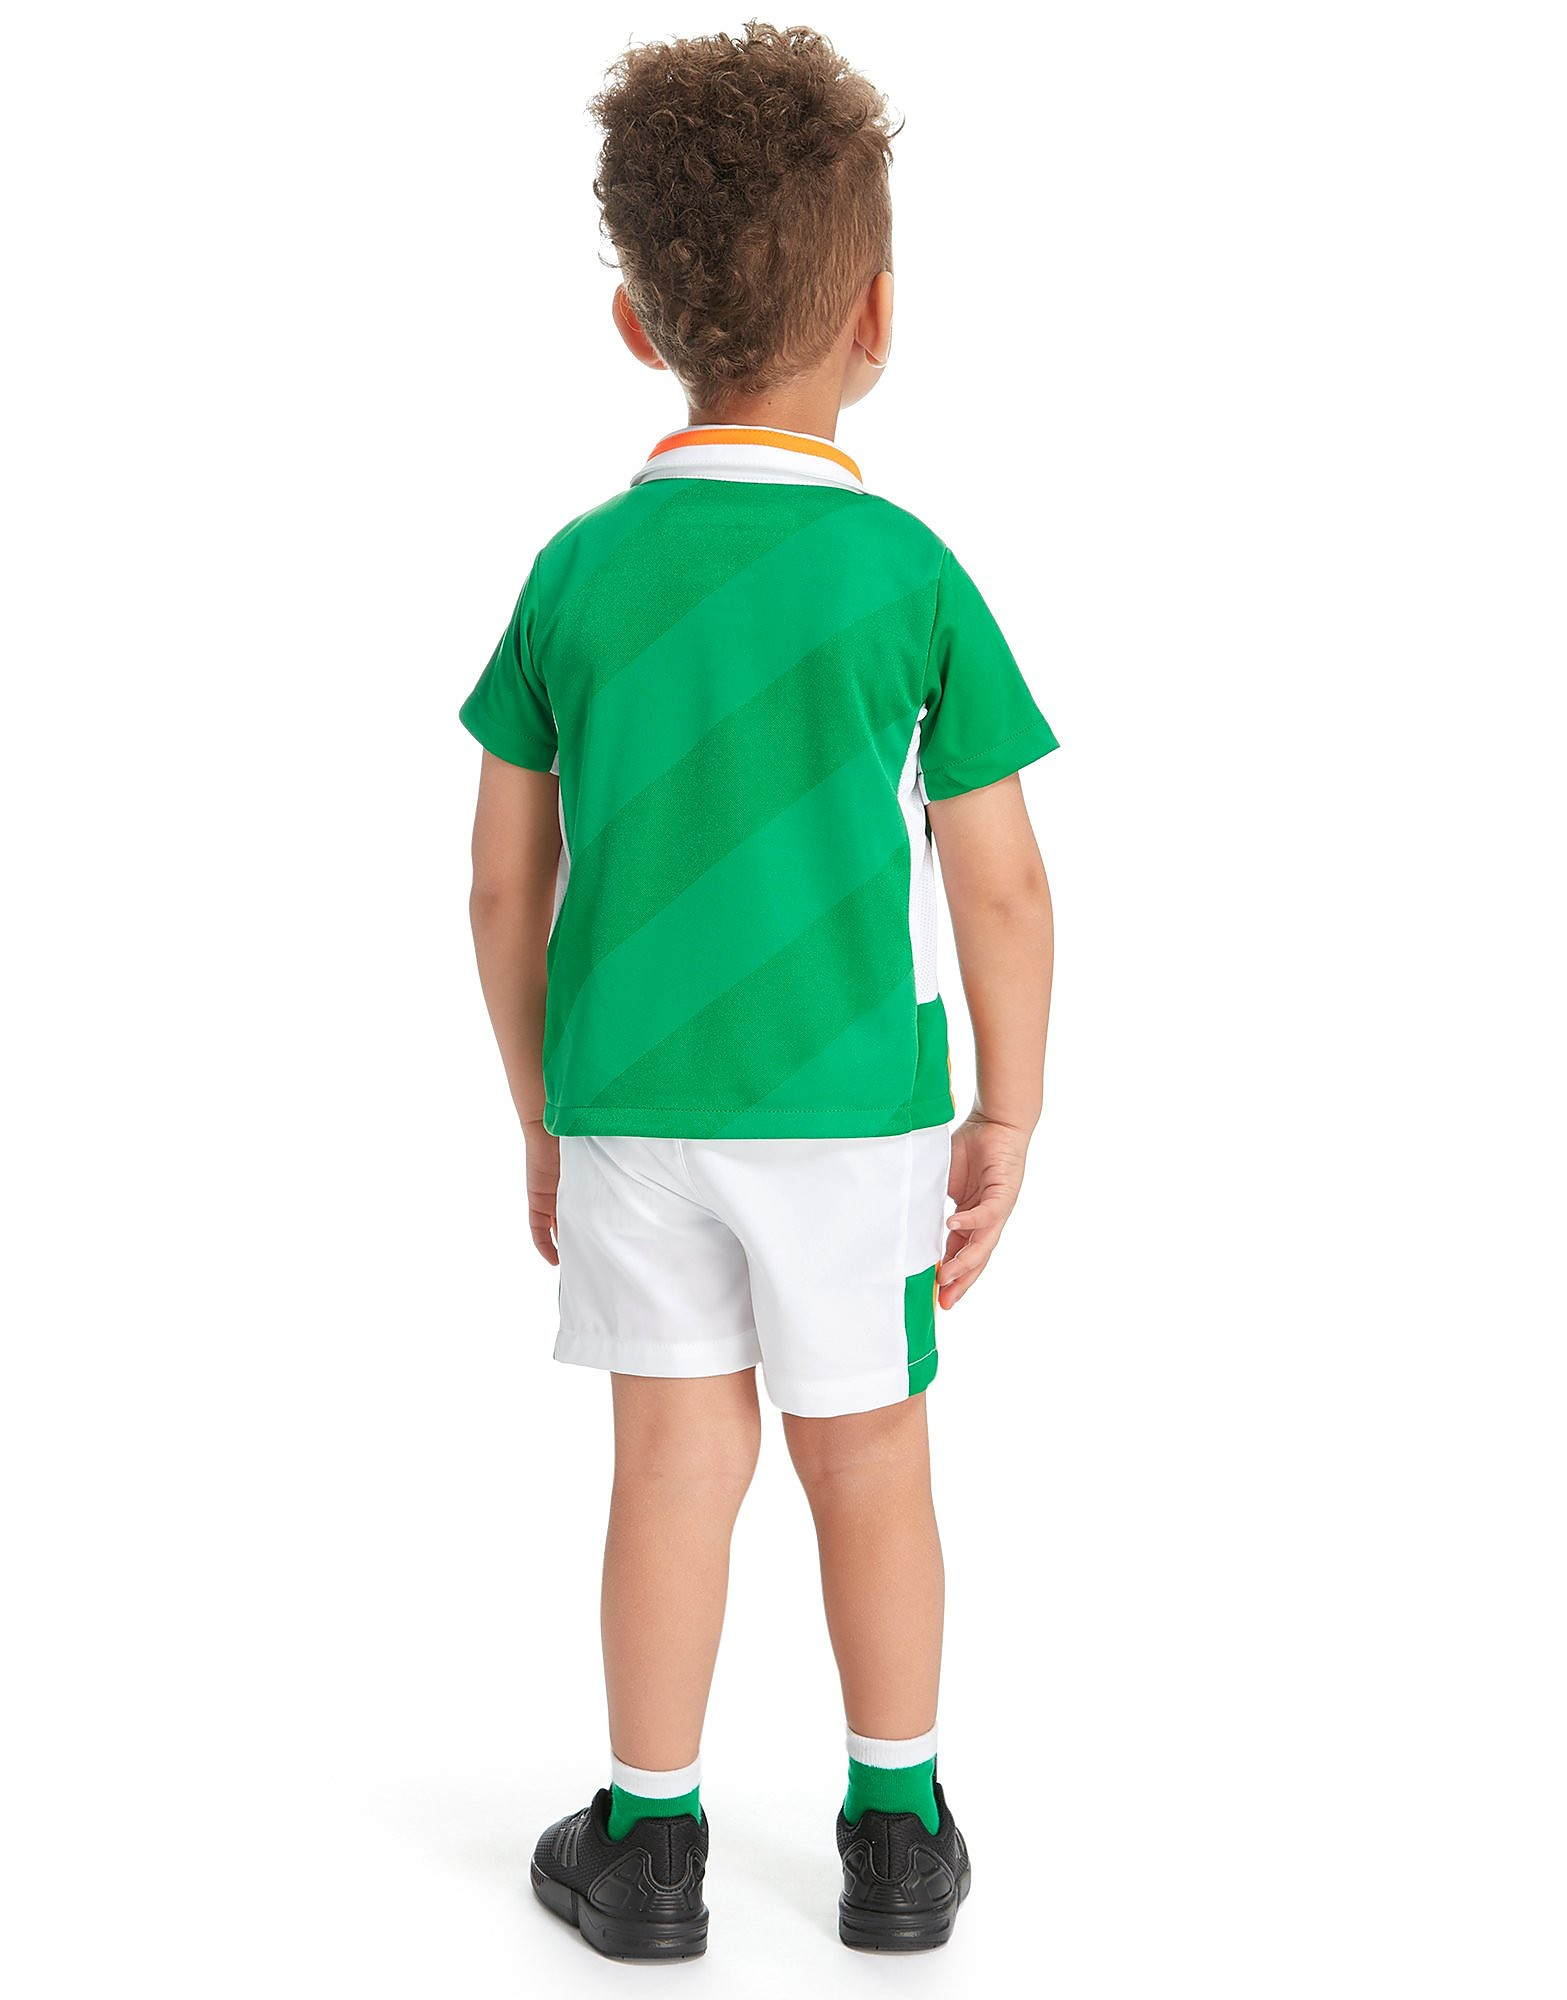 Umbro Republic of Ireland 2016 Heim-Set für Babys